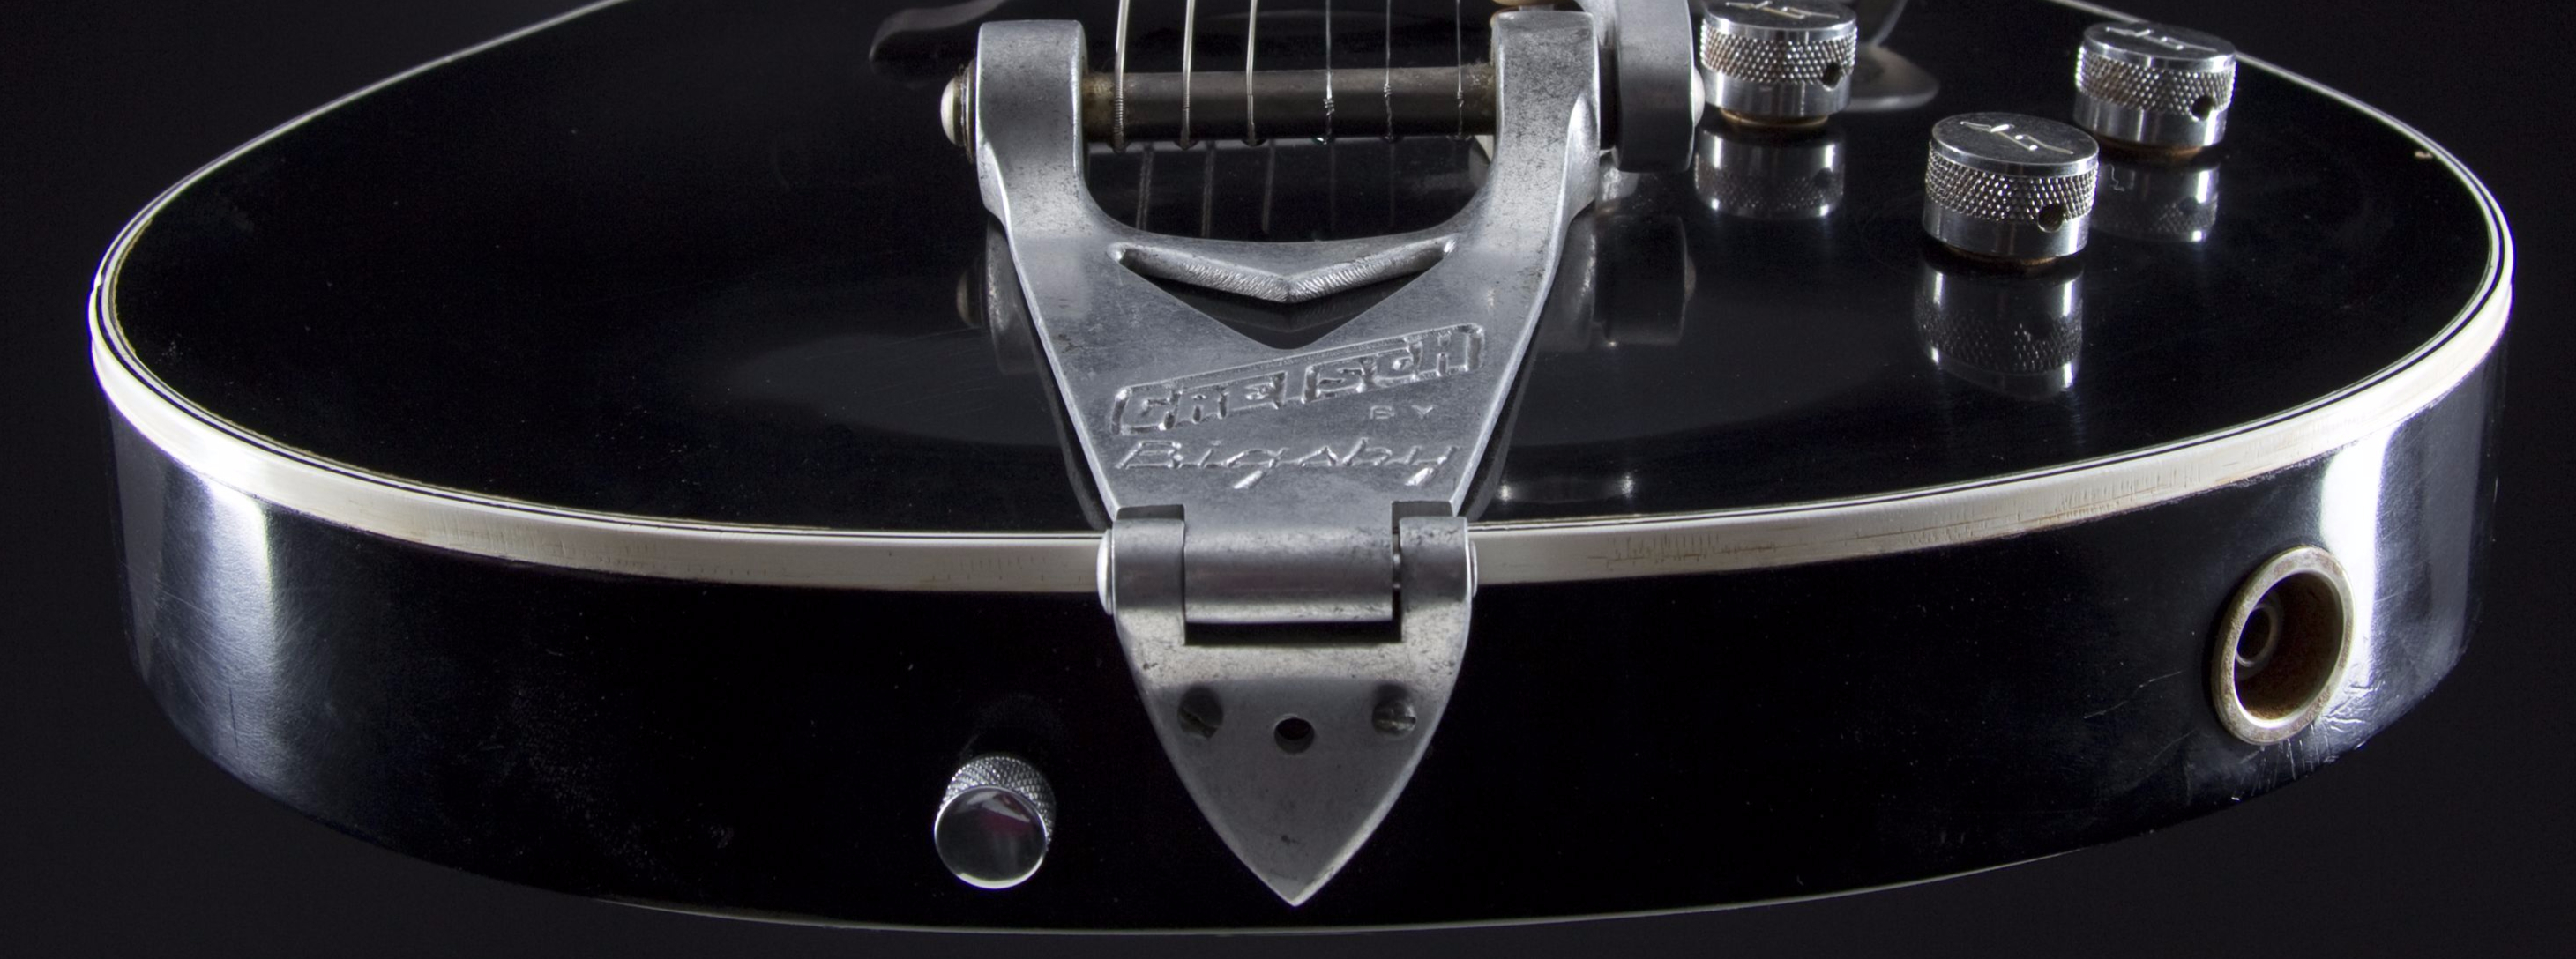 GRETSCH G6128T-GH George Harrison Tribute Detail I